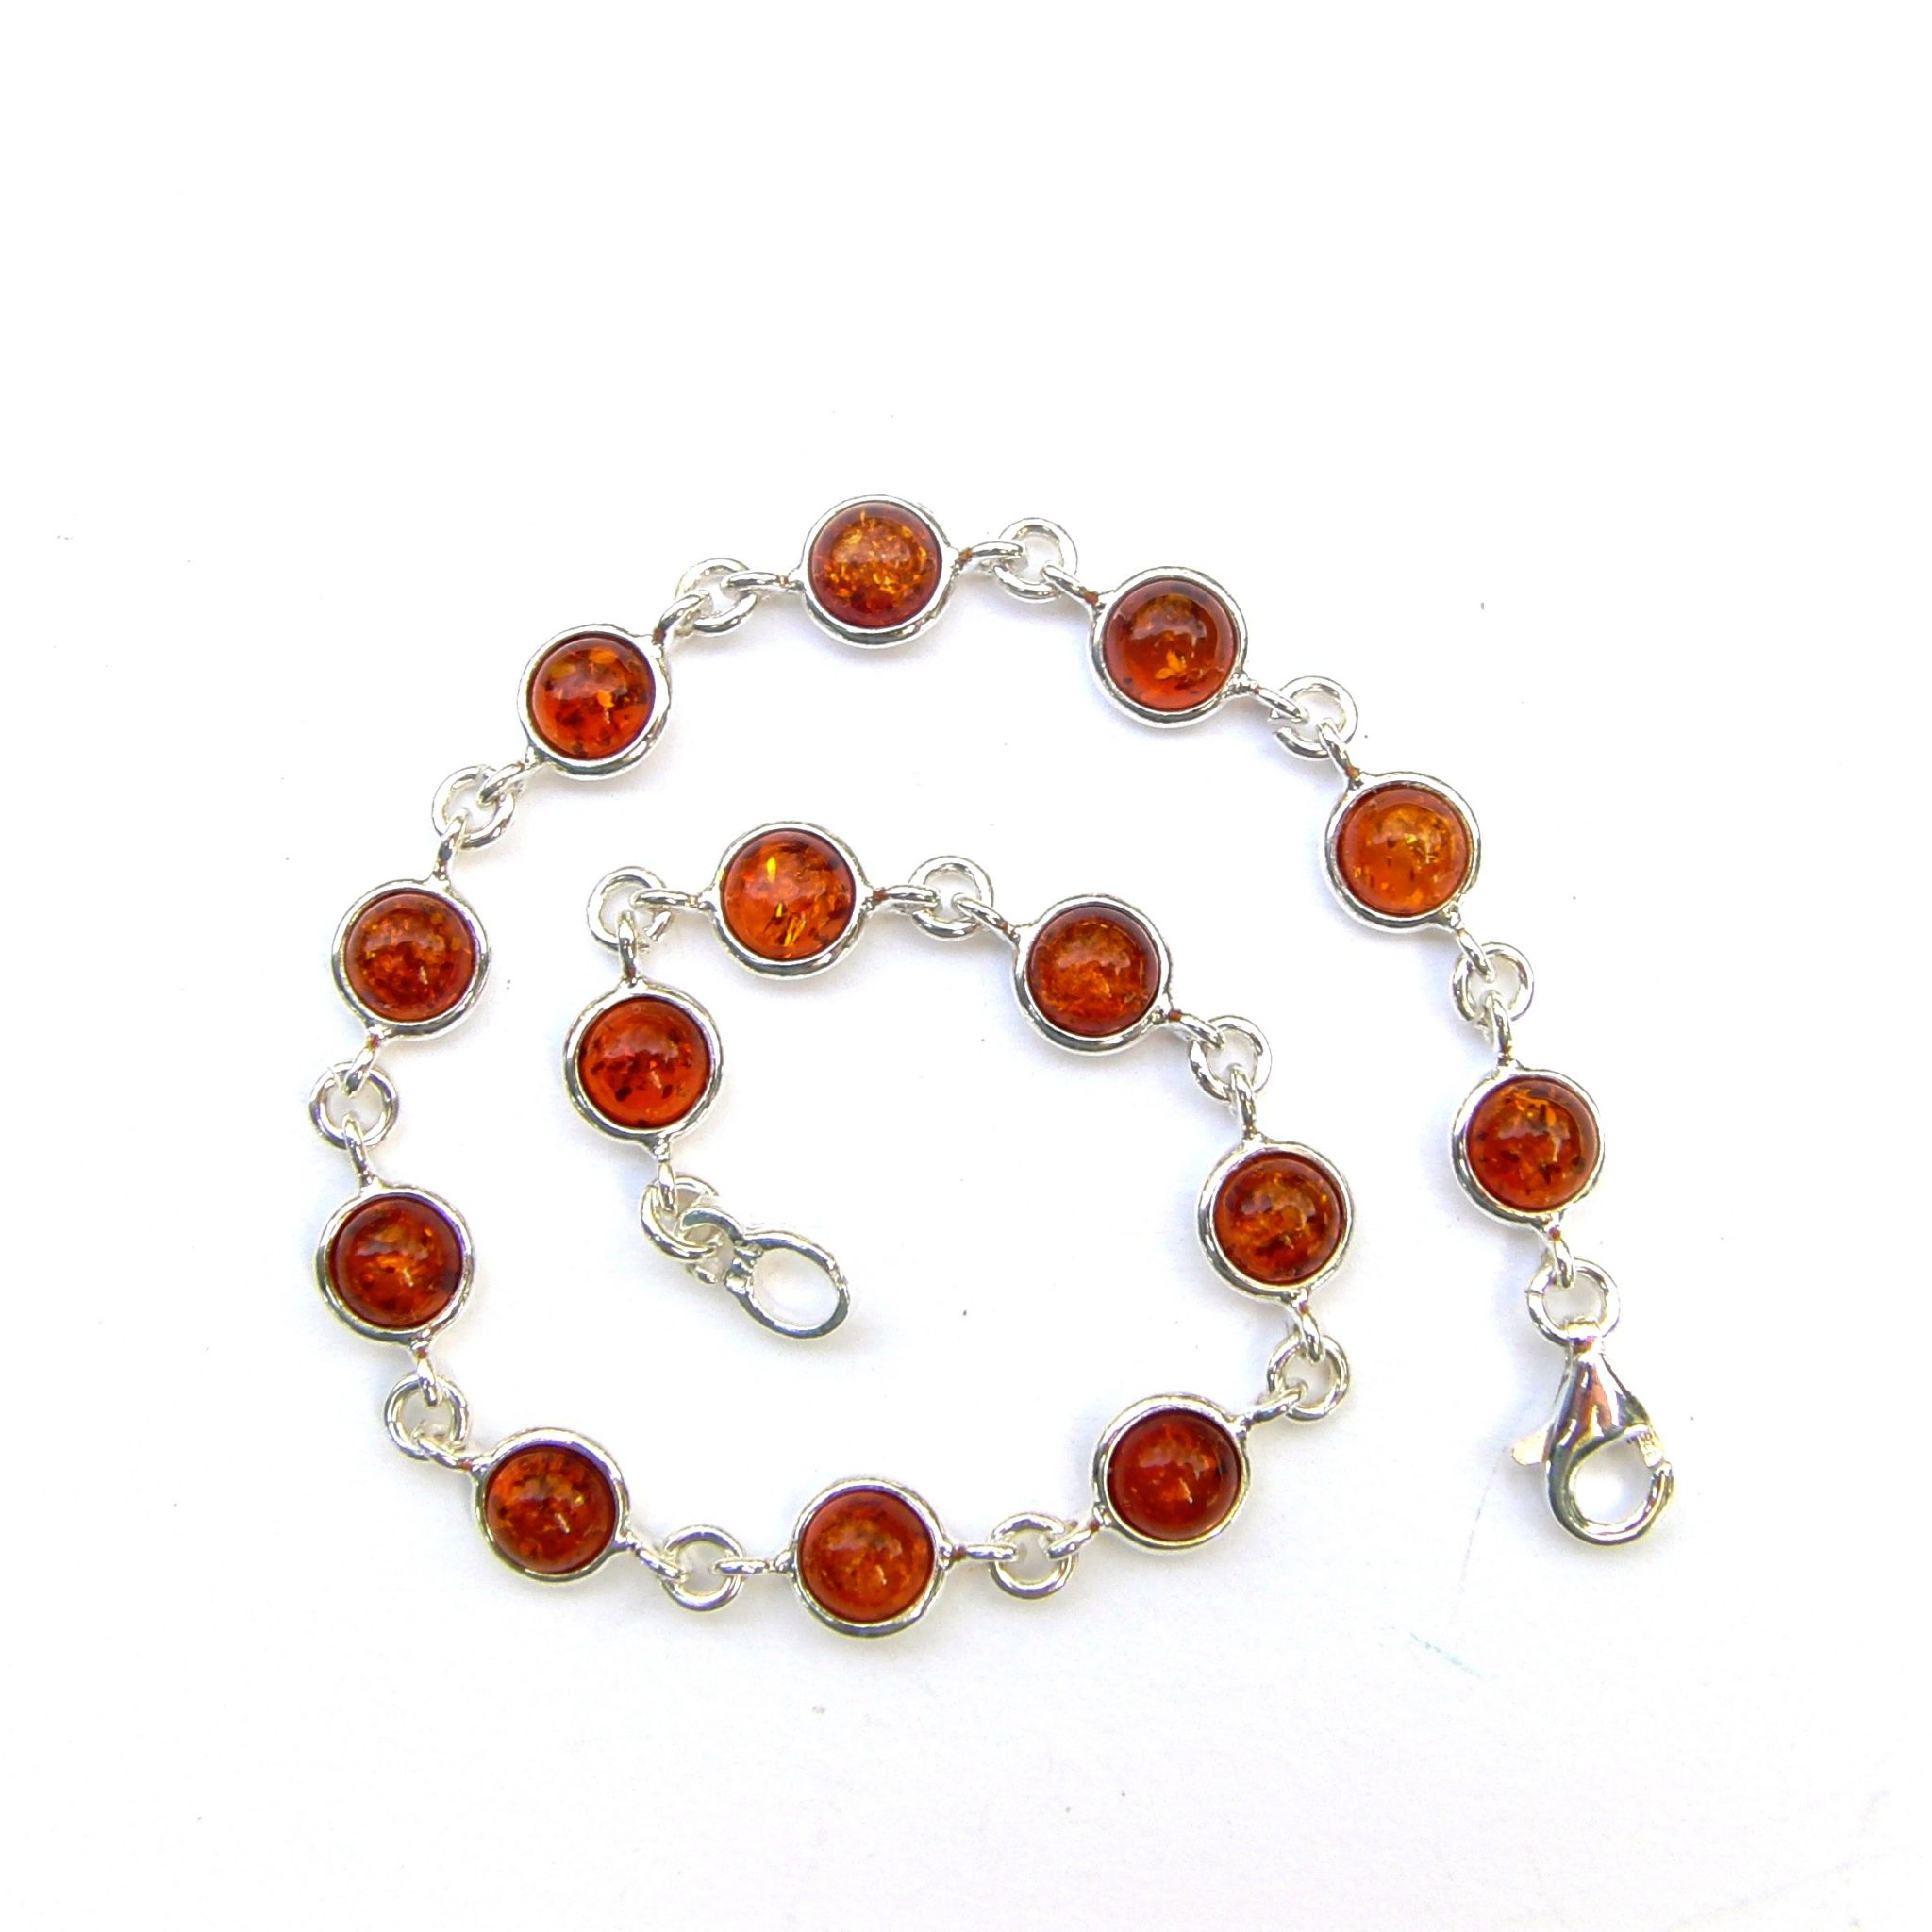 Beautiful Dainty Amber Bracelet